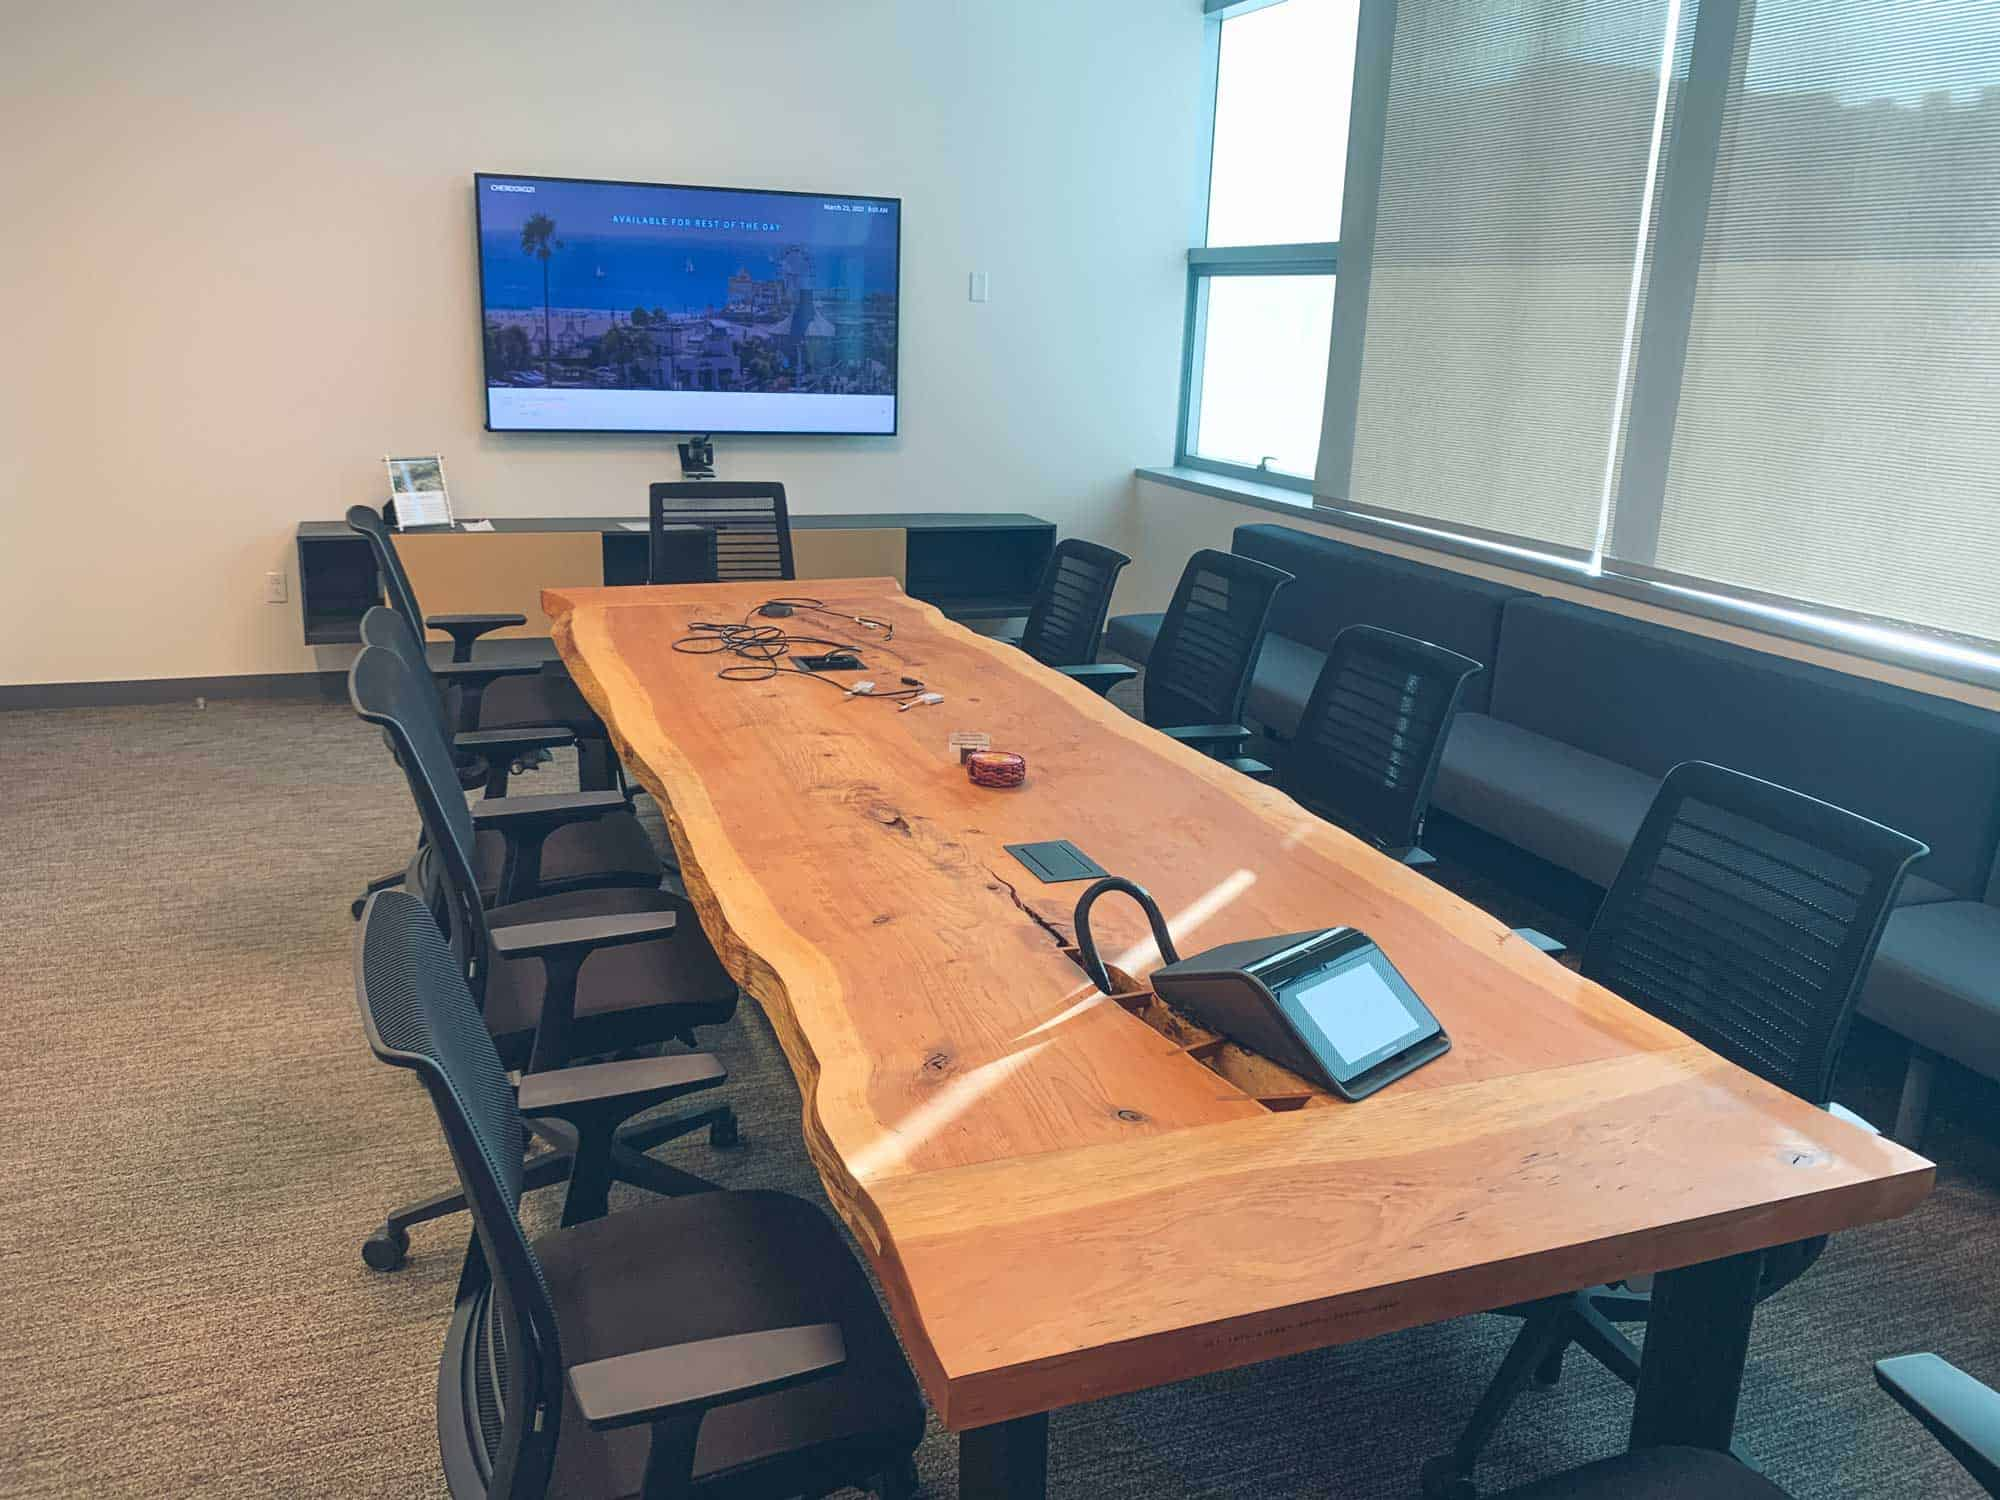 The project consolidates about 240 city staff currently housed in private leased space spread throughout downtown Santa Monica